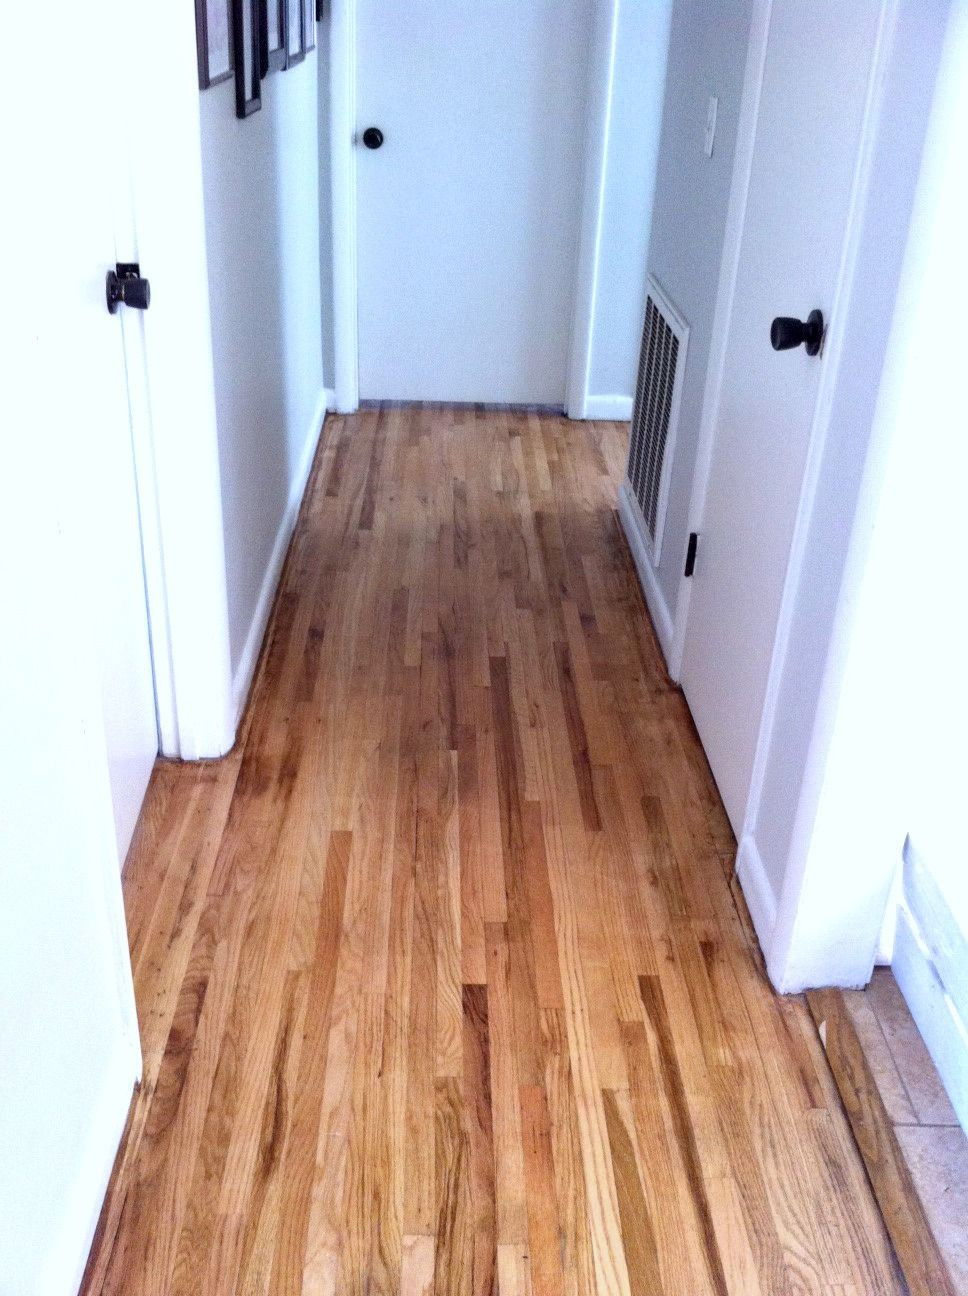 hardwood floor sanding and refinishing near me of this is what happens when you dont listen to the folks at lowes with refinishing hardwood floors includes price breakdown mom in music city i didnt stain my floors i think the natural wood goes well with our house